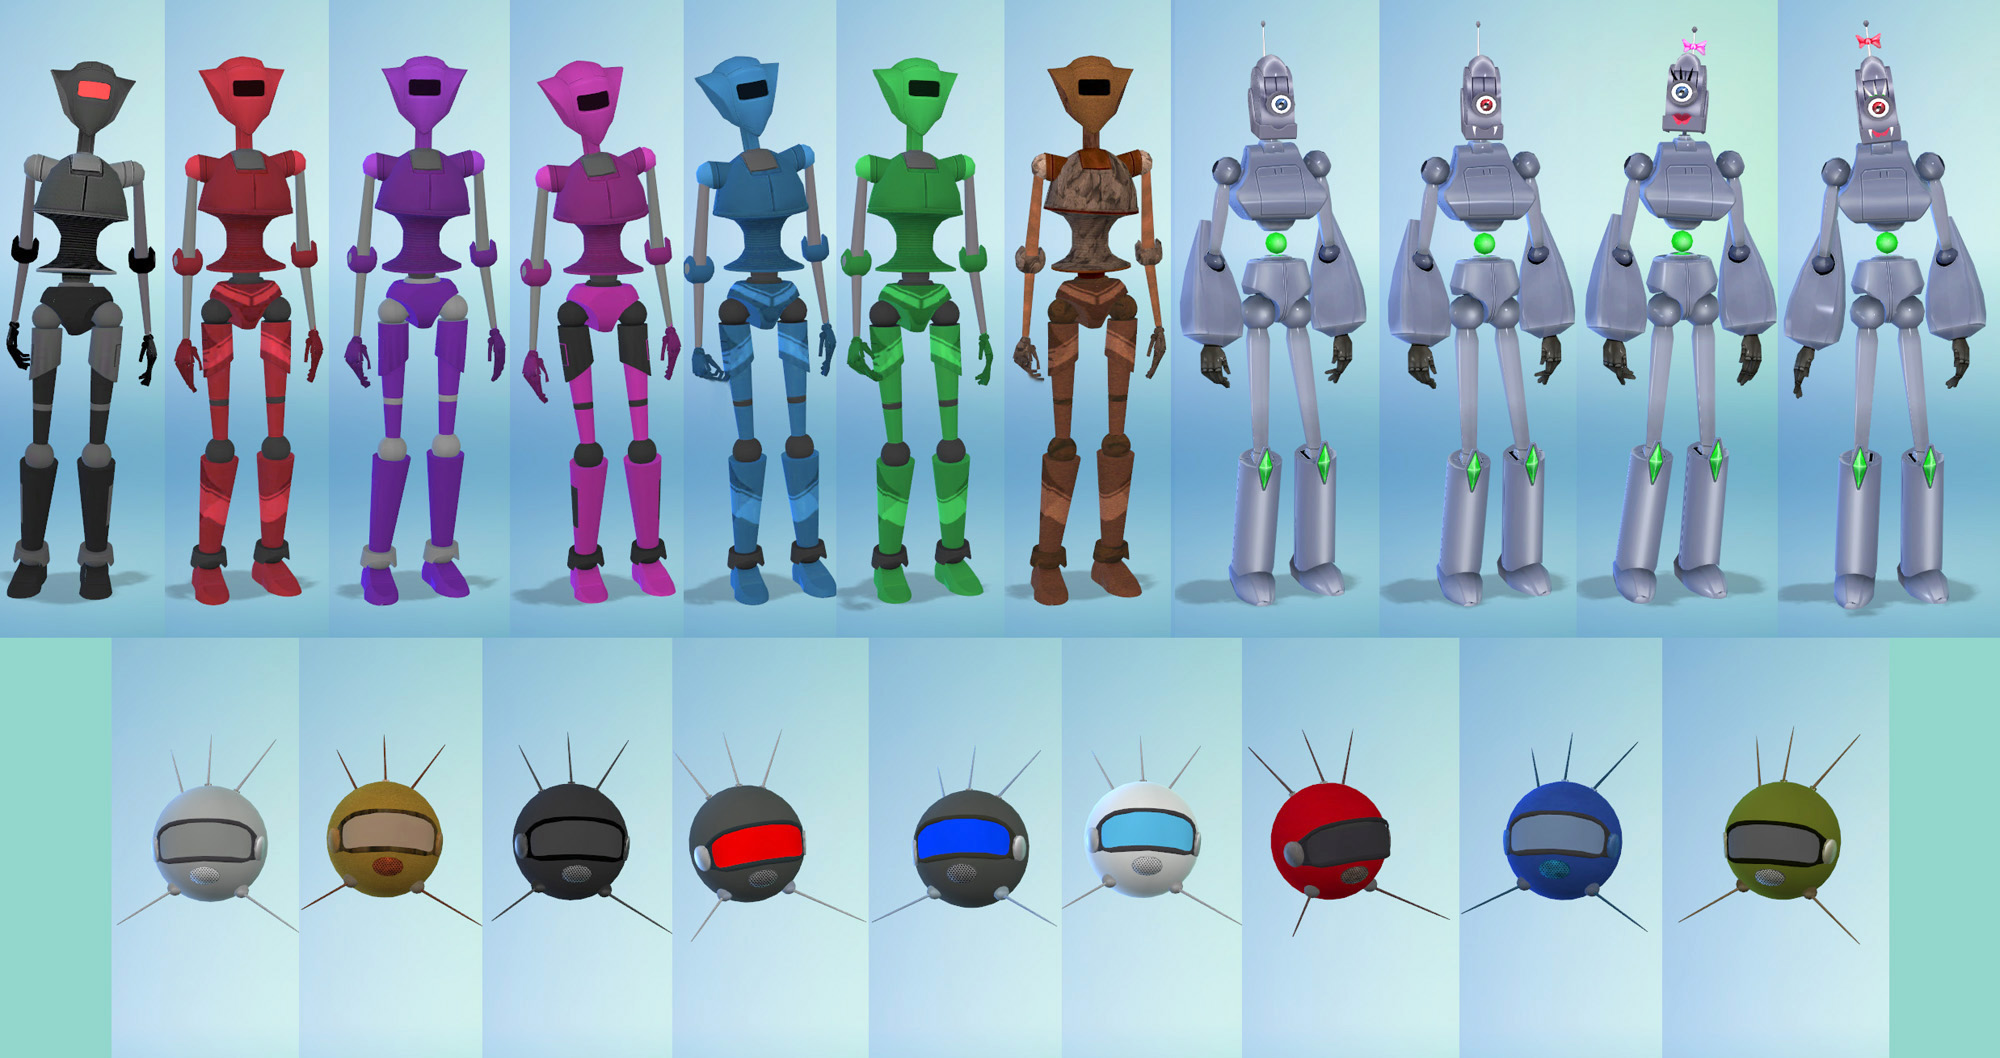 Mod The Sims - Tiny Robots - Kids Robot Costumes